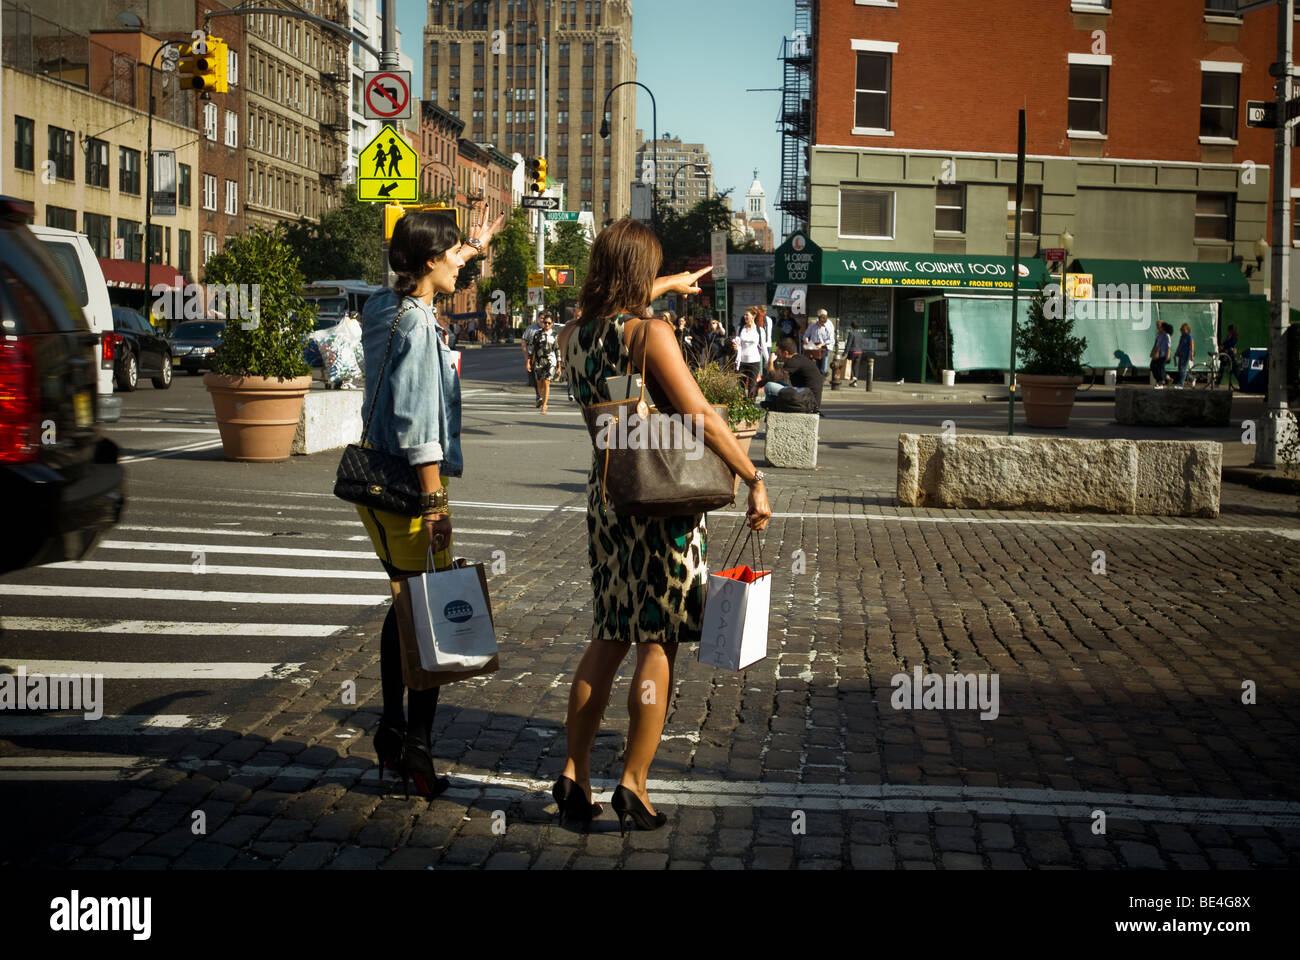 Shoppers attempt to hail a taxicab in the trendy Meatpacking District in New York - Stock Image